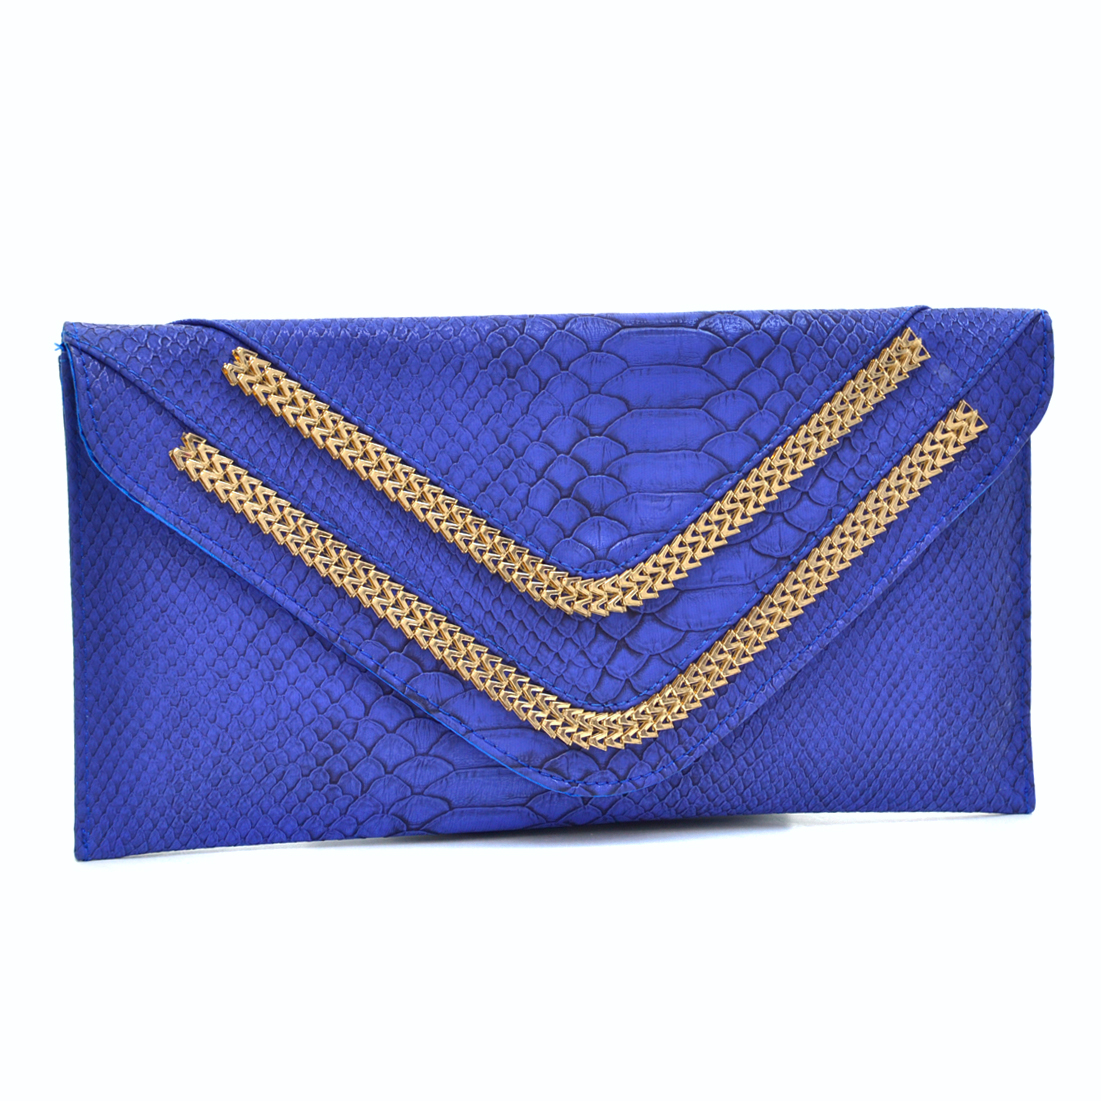 Metallic Faux Snakeskin Fold Over Clutch with Removable Chain Strap